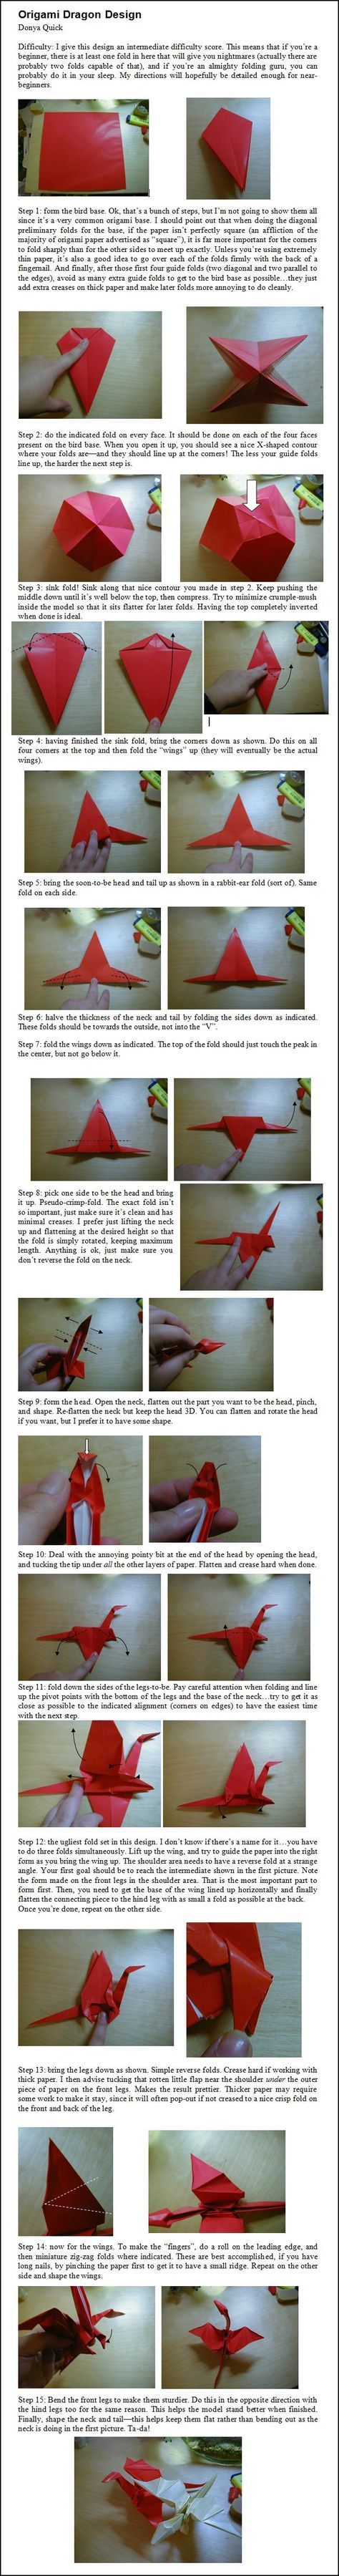 103 Best Origami Images On Pinterest Animals Parrotdiagram By Barth Dunkan Ecorigami Dragon Instructions Donyaquick Deviantart